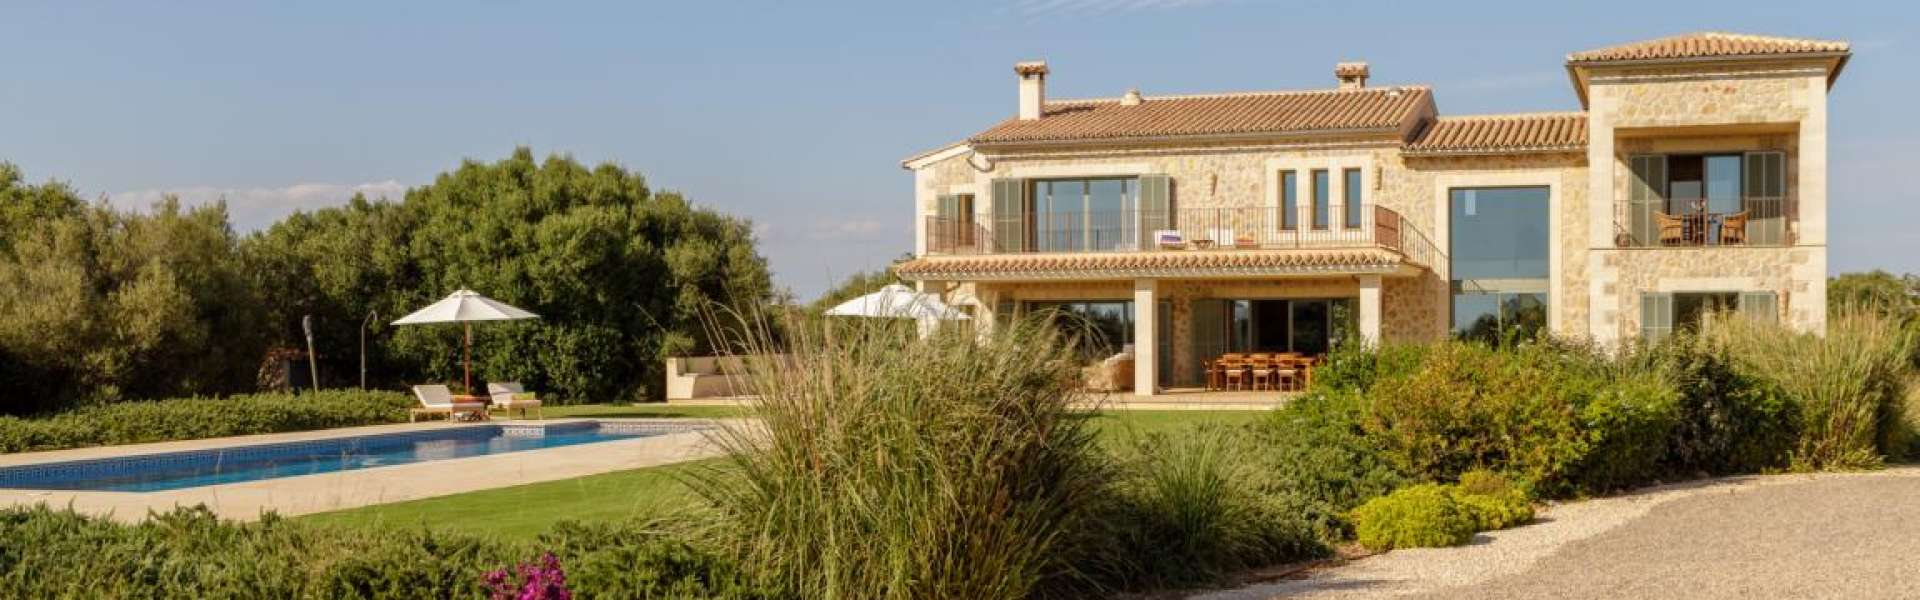 Spacious new country home in Ses Salines